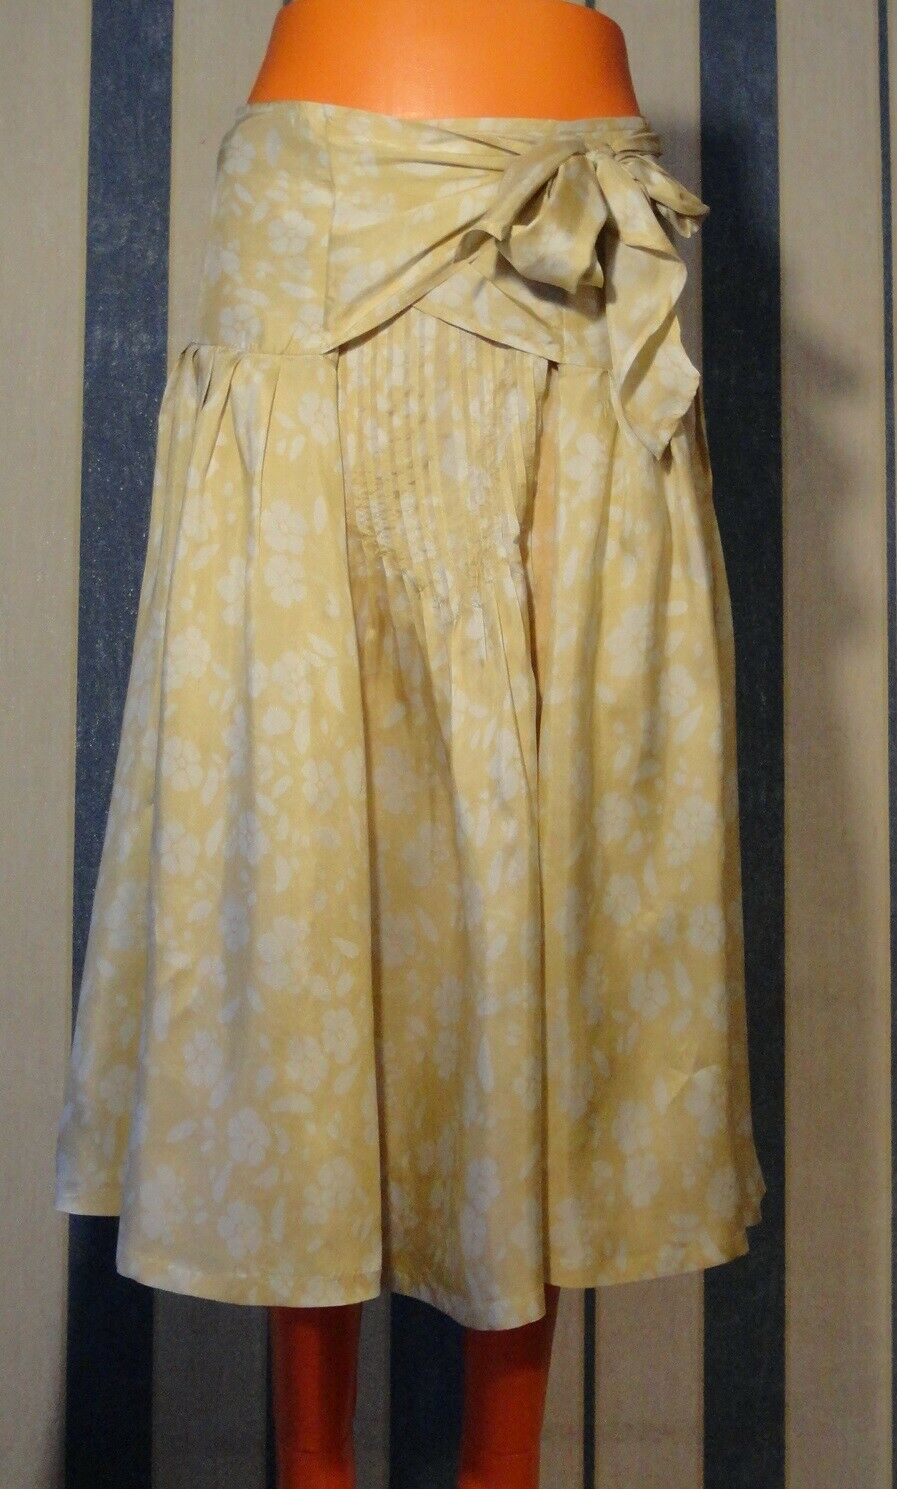 NWT Dries Van Noten beautiful silk skirt 36 Fr 4 6 US  1550CHF